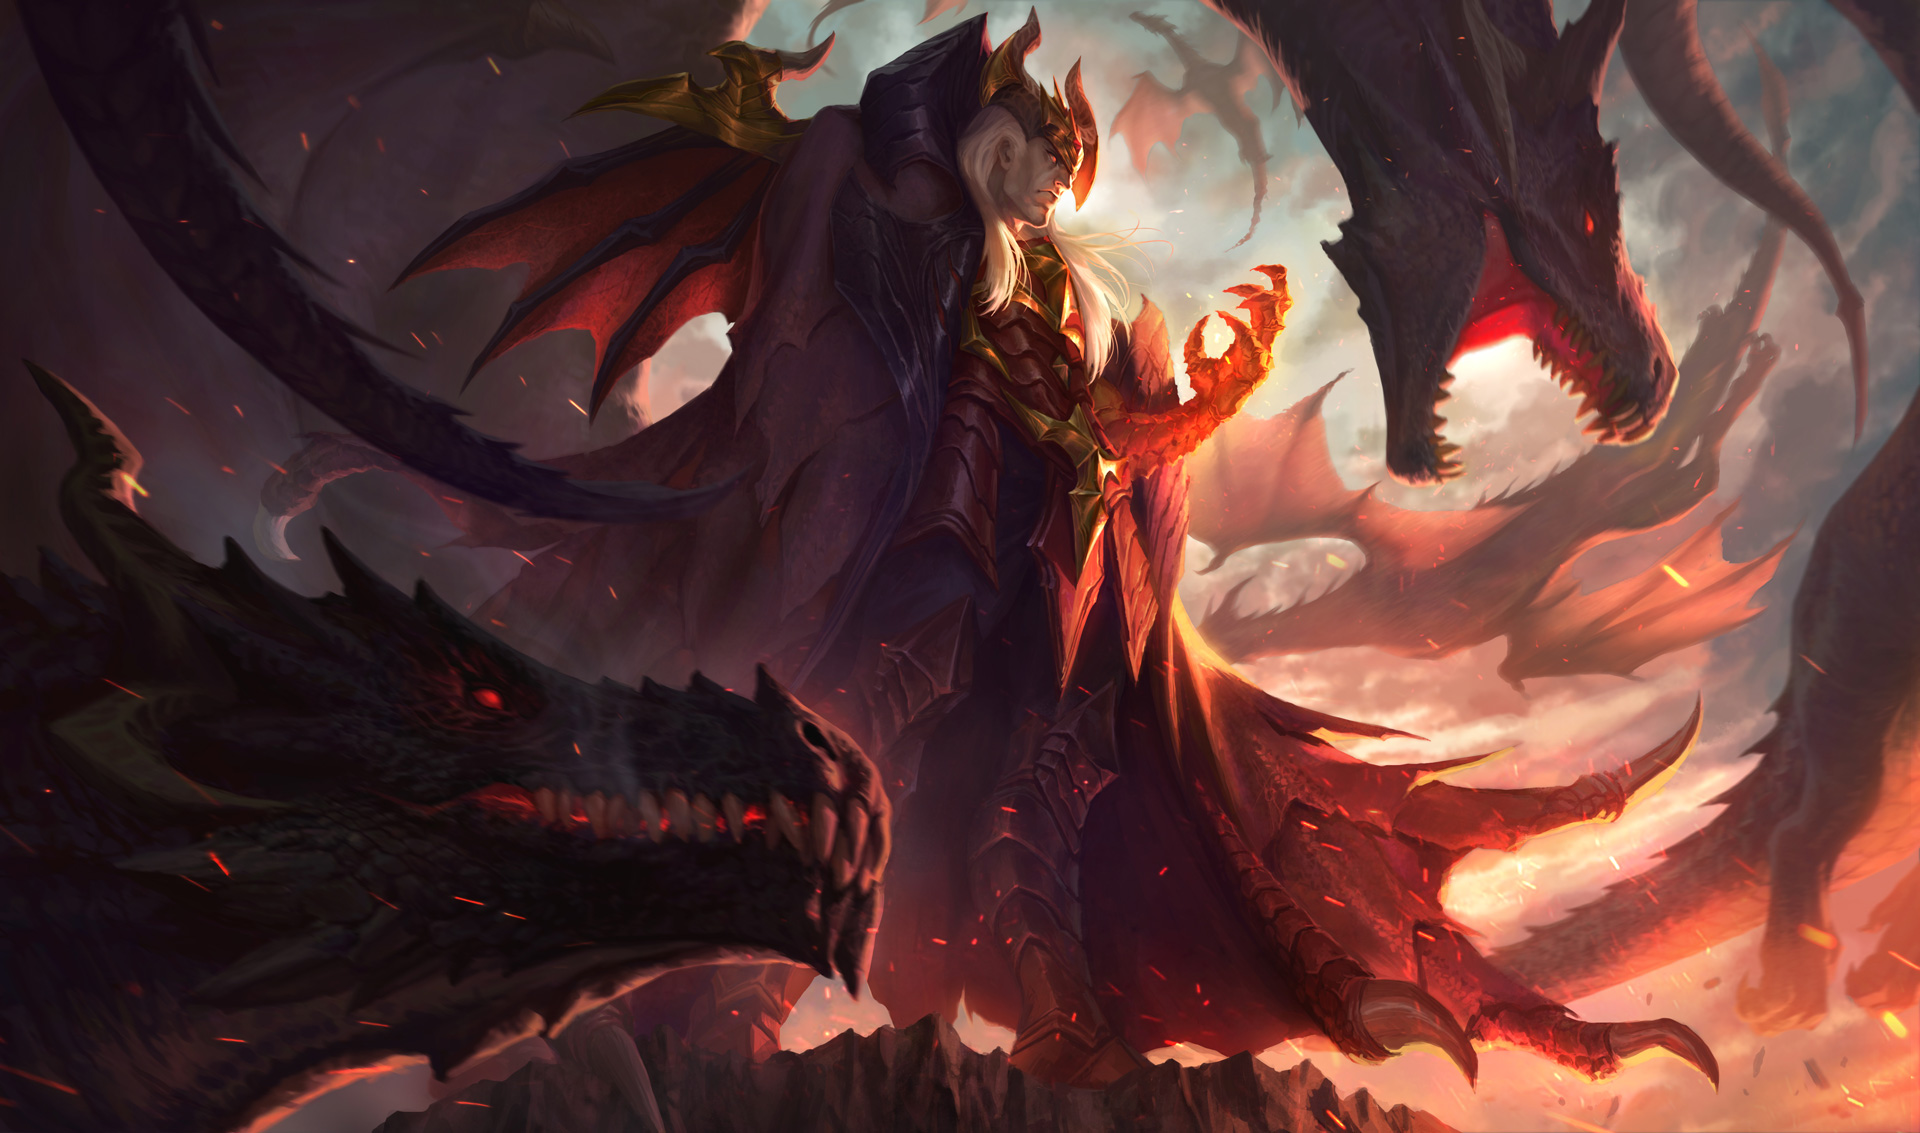 SWAIN_DRAGON_MASTER_SPLASH_FINAL_OF_ALL_FINALSV2.jpg